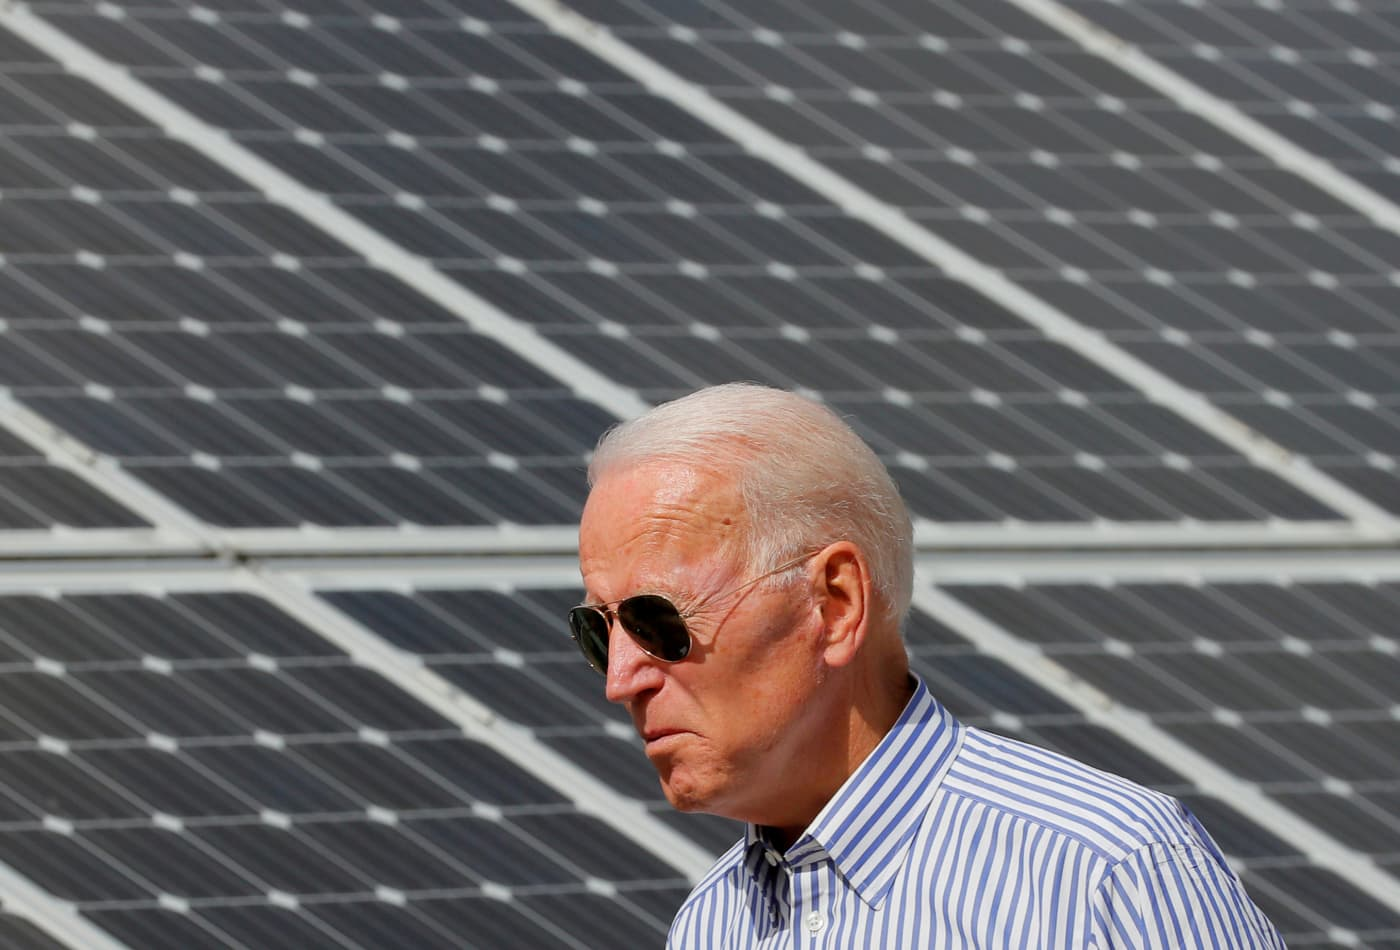 Here are 3 energy stocks that top analysts say are smart plays in a Biden administration